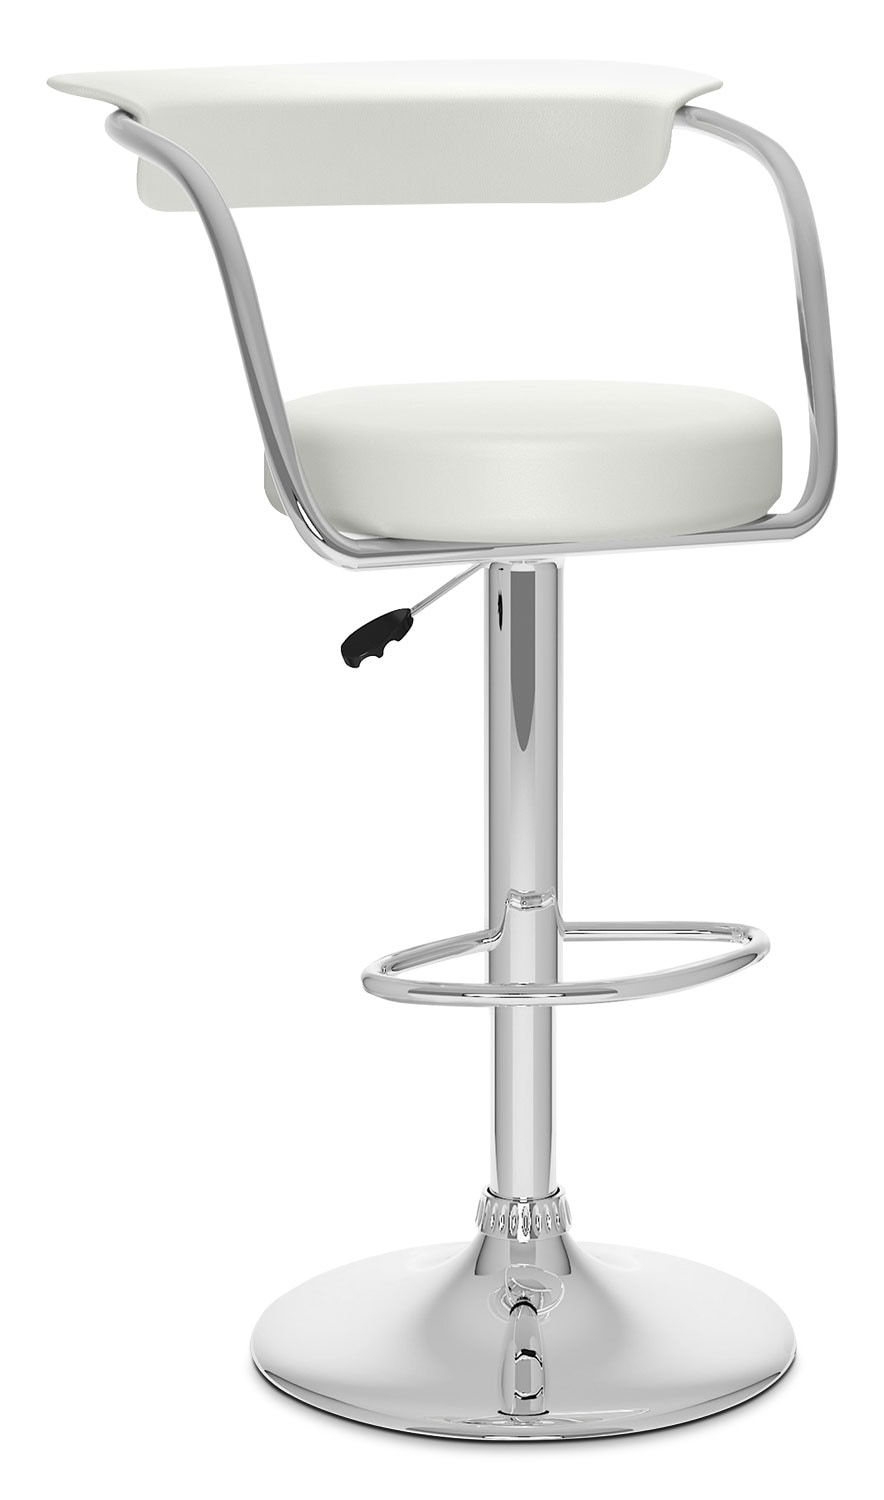 Dining Room Furniture - CorLiving Open Back Adjustable Bar Stool - White